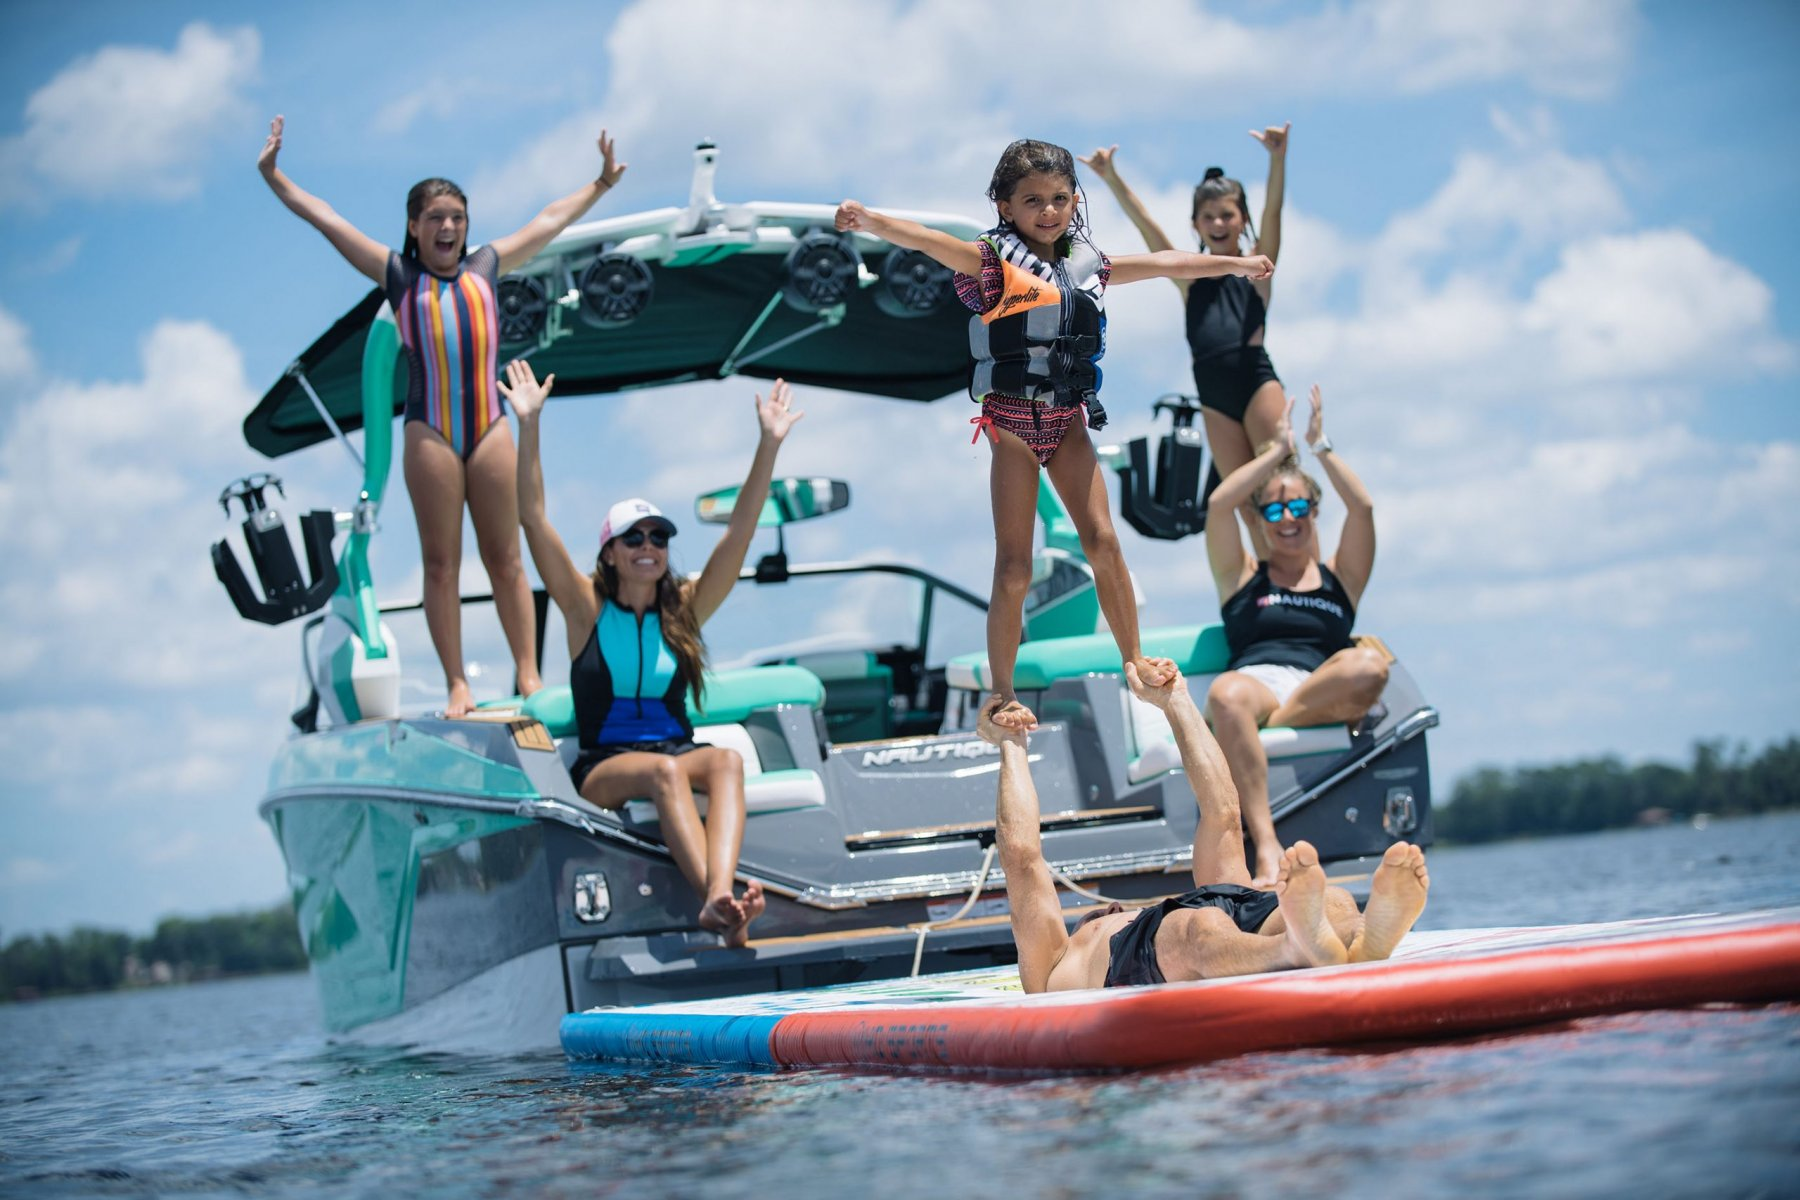 Family Time on the 2022 Nautique G25 Wake Boat